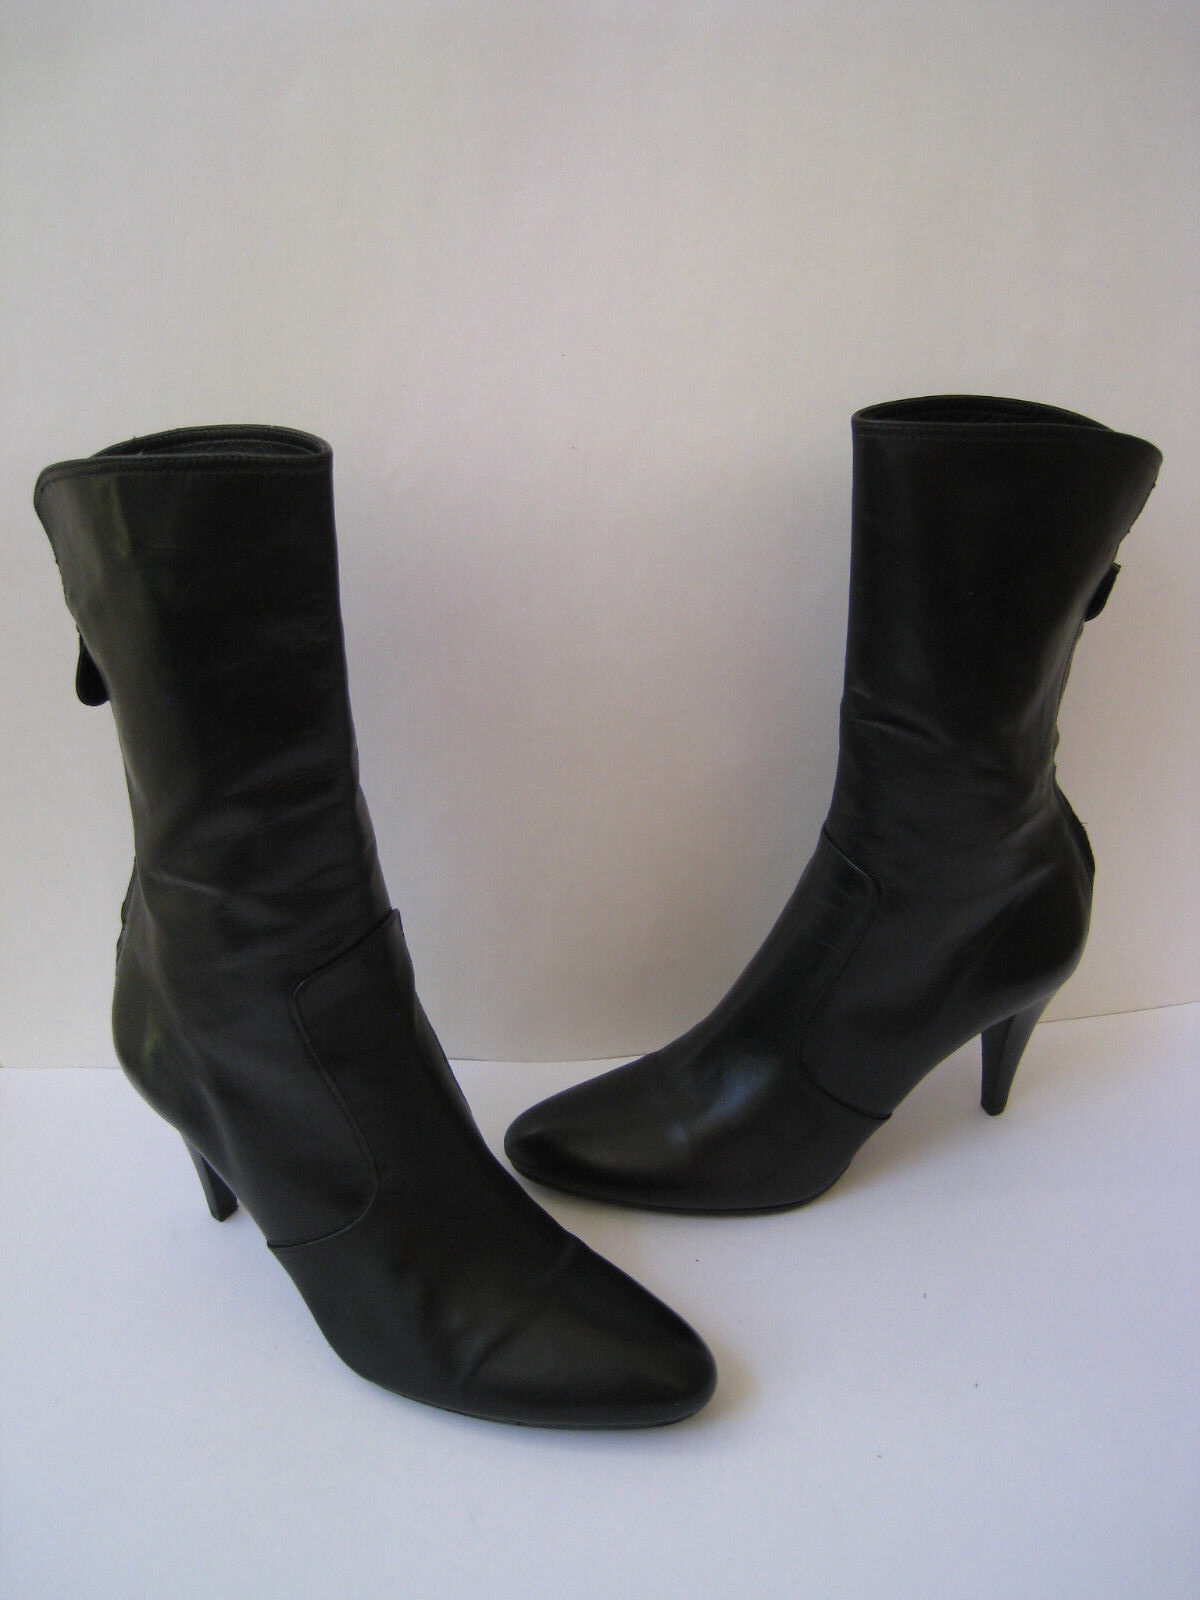 COLE HAAN BLACK LEATHER BOOTS 3  HEEL WOMEN SIZE US 9.5B RARE HOT MADE IN ITALY